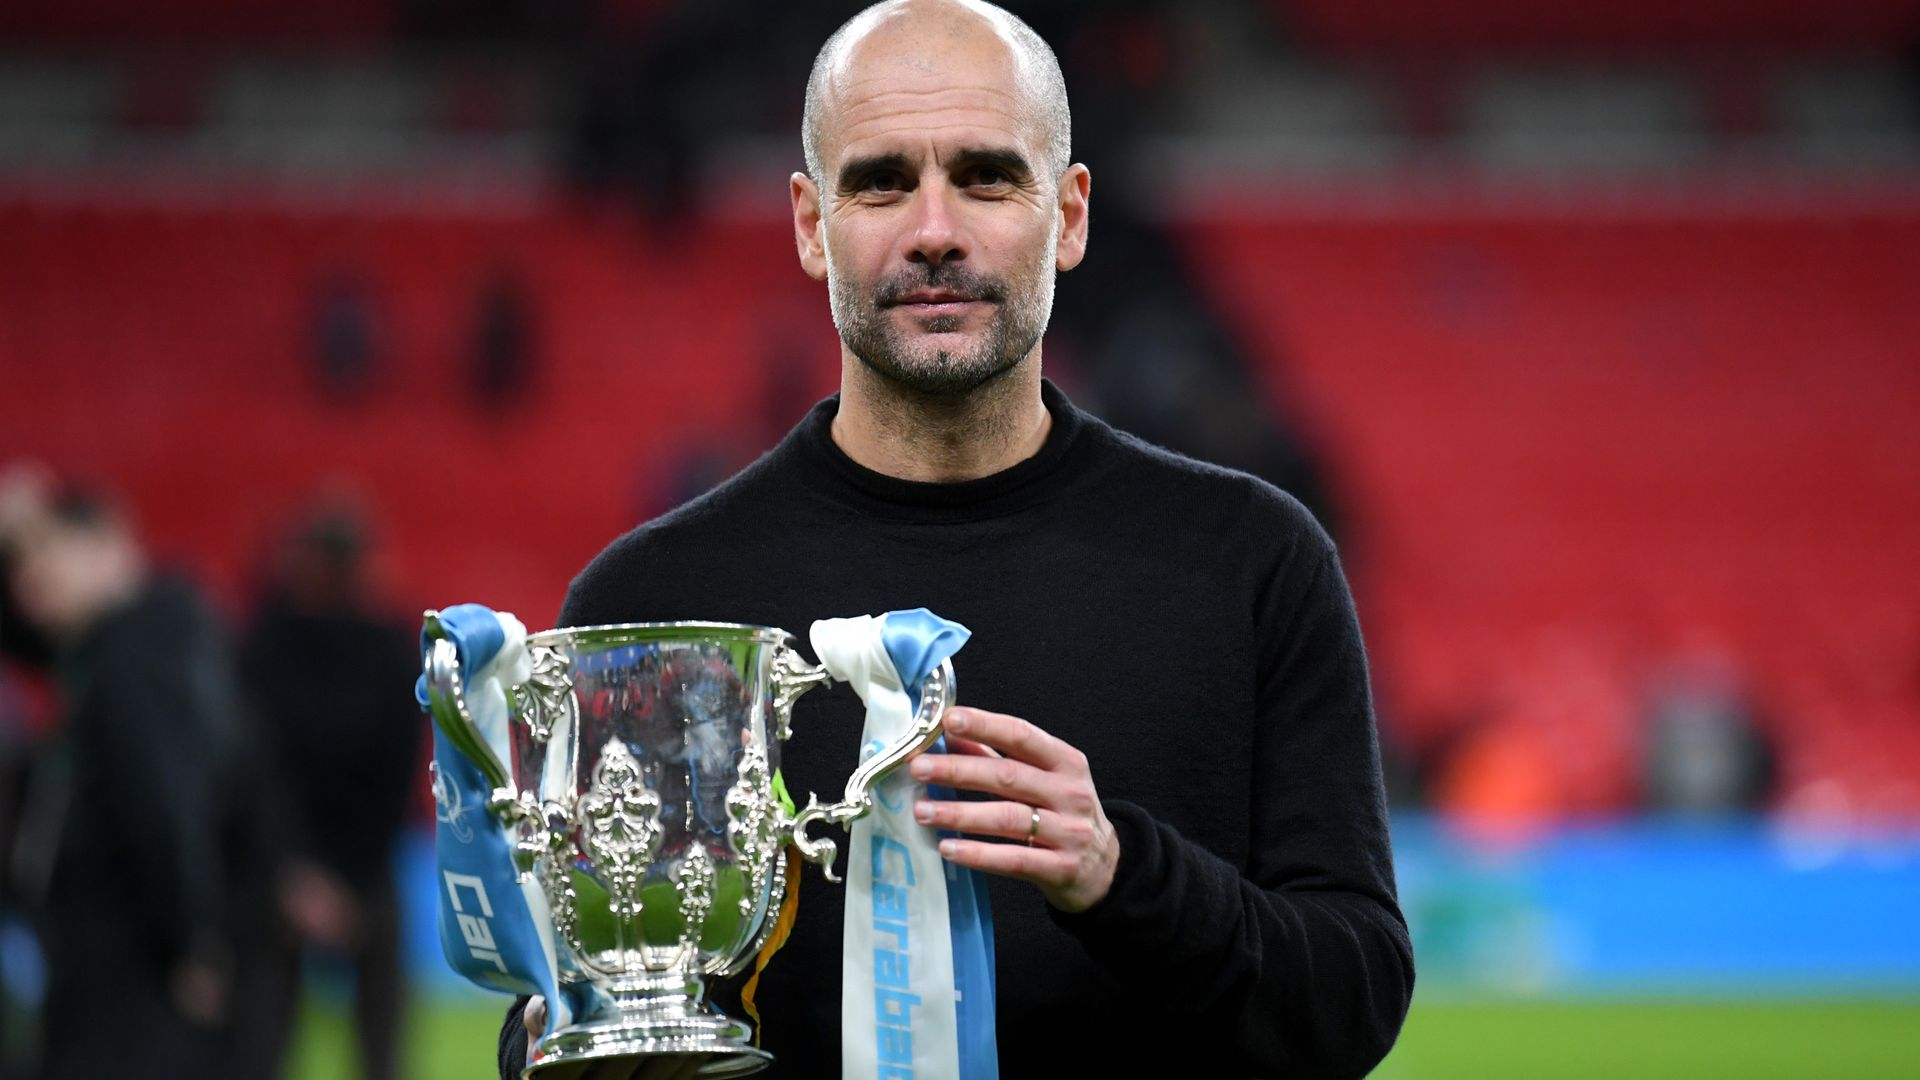 Carabao Cup draw: Man City to face Bournemouth or Palace